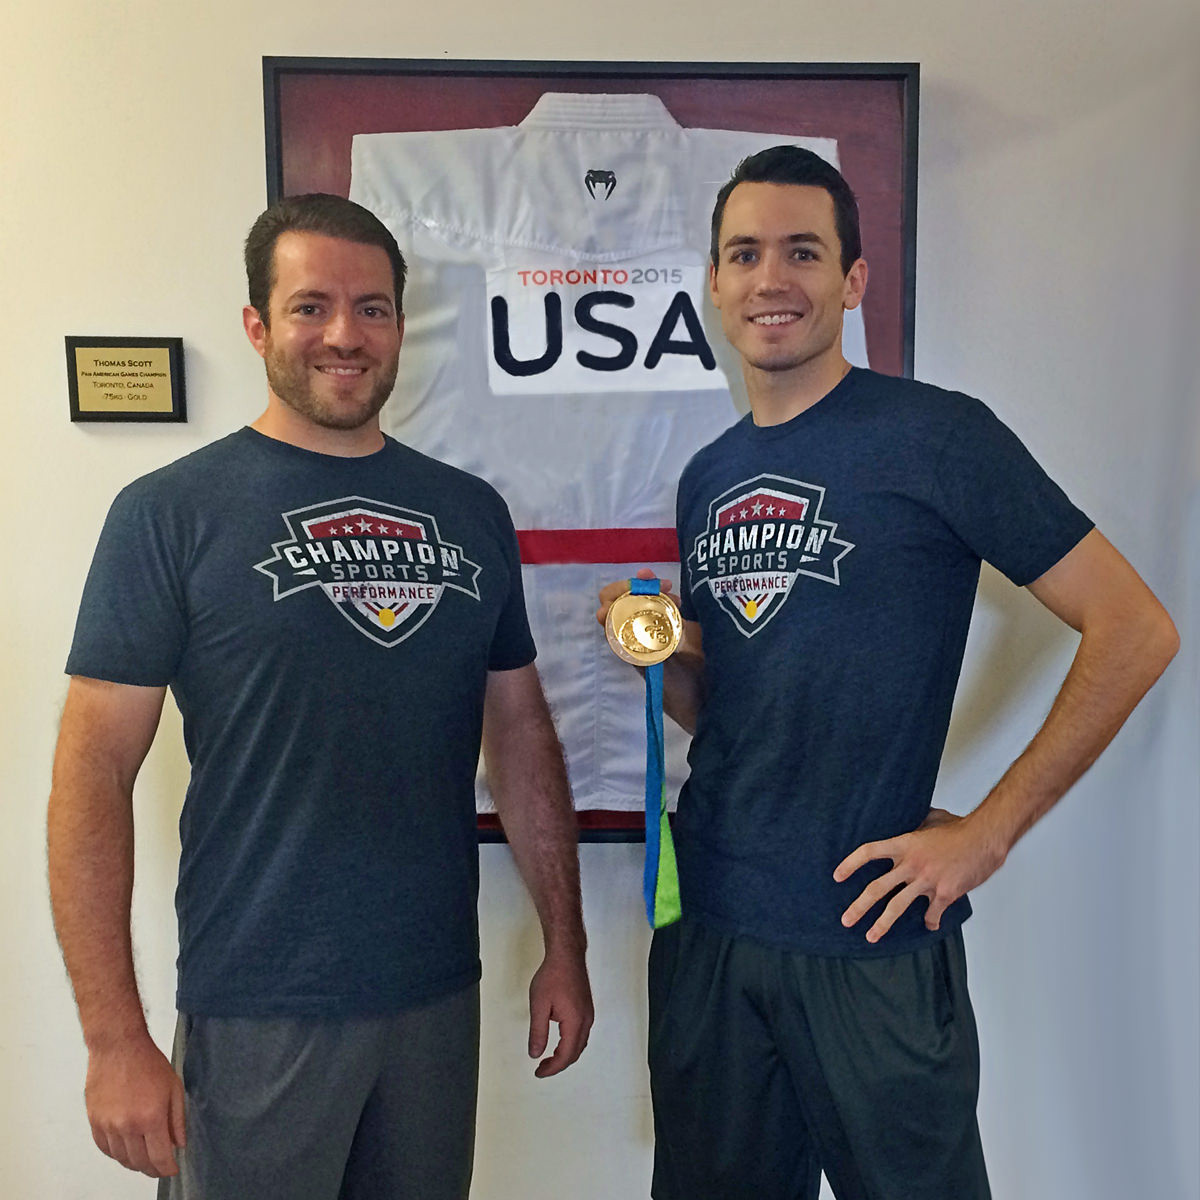 Champion Sports Performance Coach Chris Stratis and Athlete Tom Scott with his Pan American Games gold medal and his framed gi from the competition.